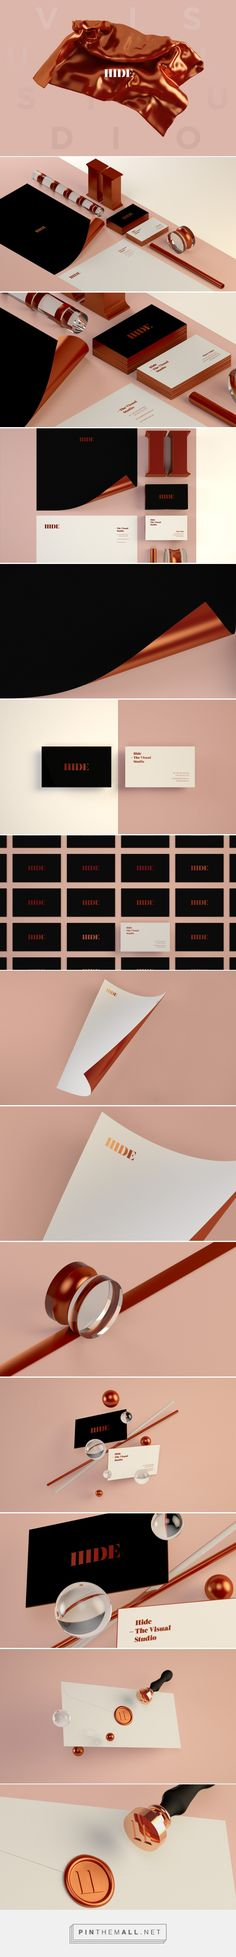 Hide Branding by Peter Cobo on Behance